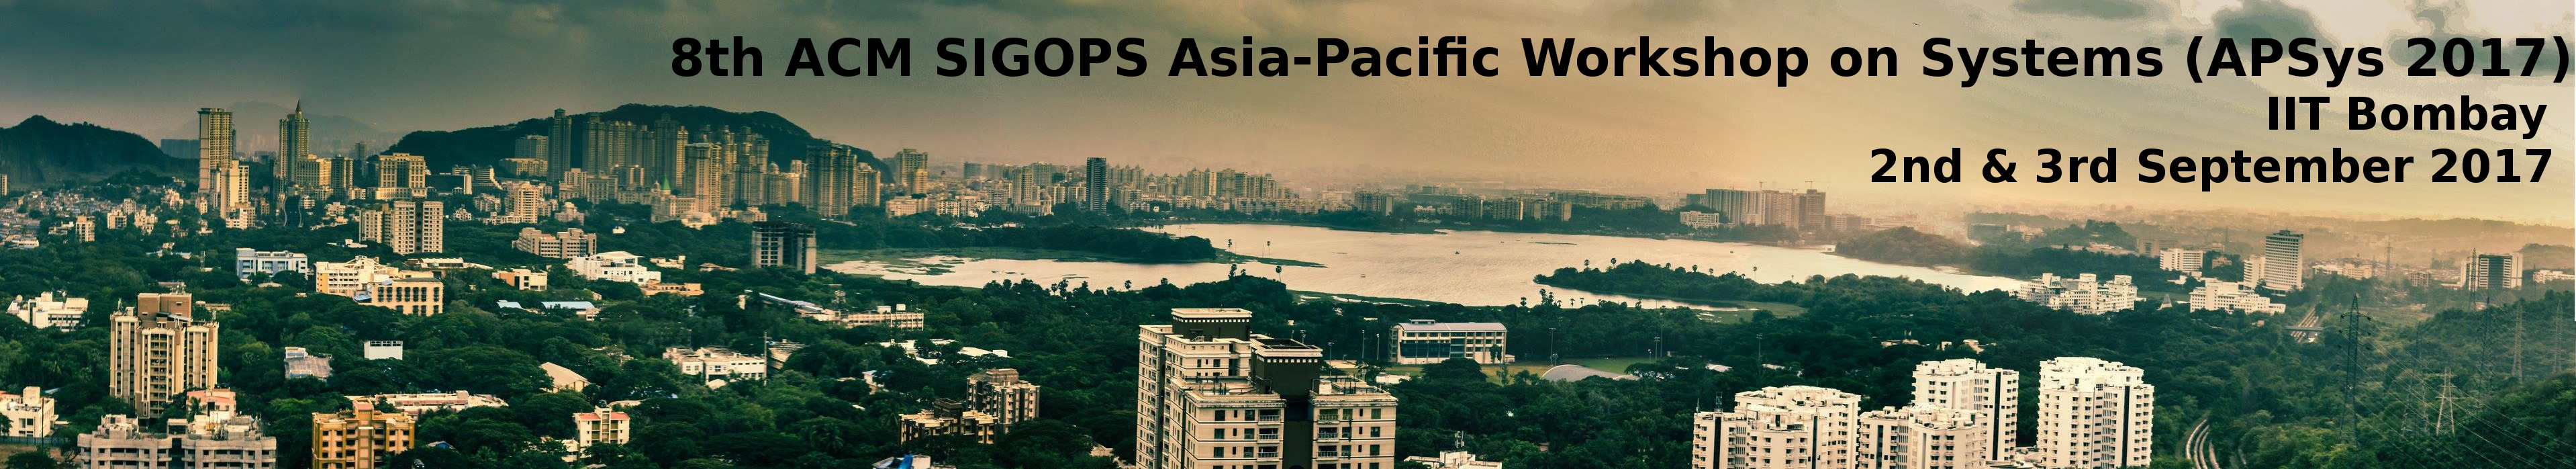 8th ACM SIGOPS Asia-Pacific Workshop on Systems (APSys 2017)